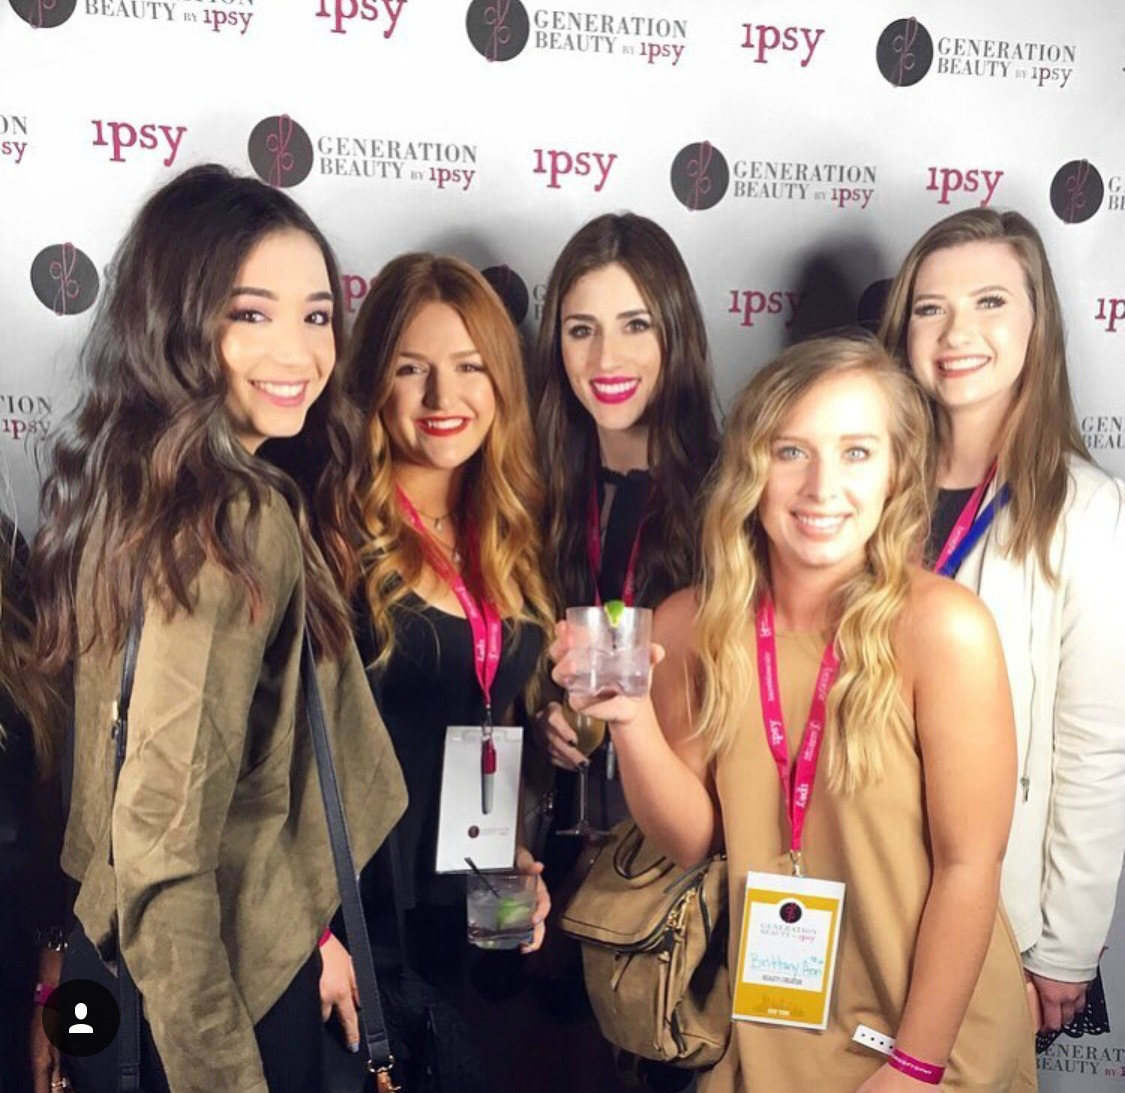 Ipsy Cocktail Party | What I've Learned From my Side Hustle